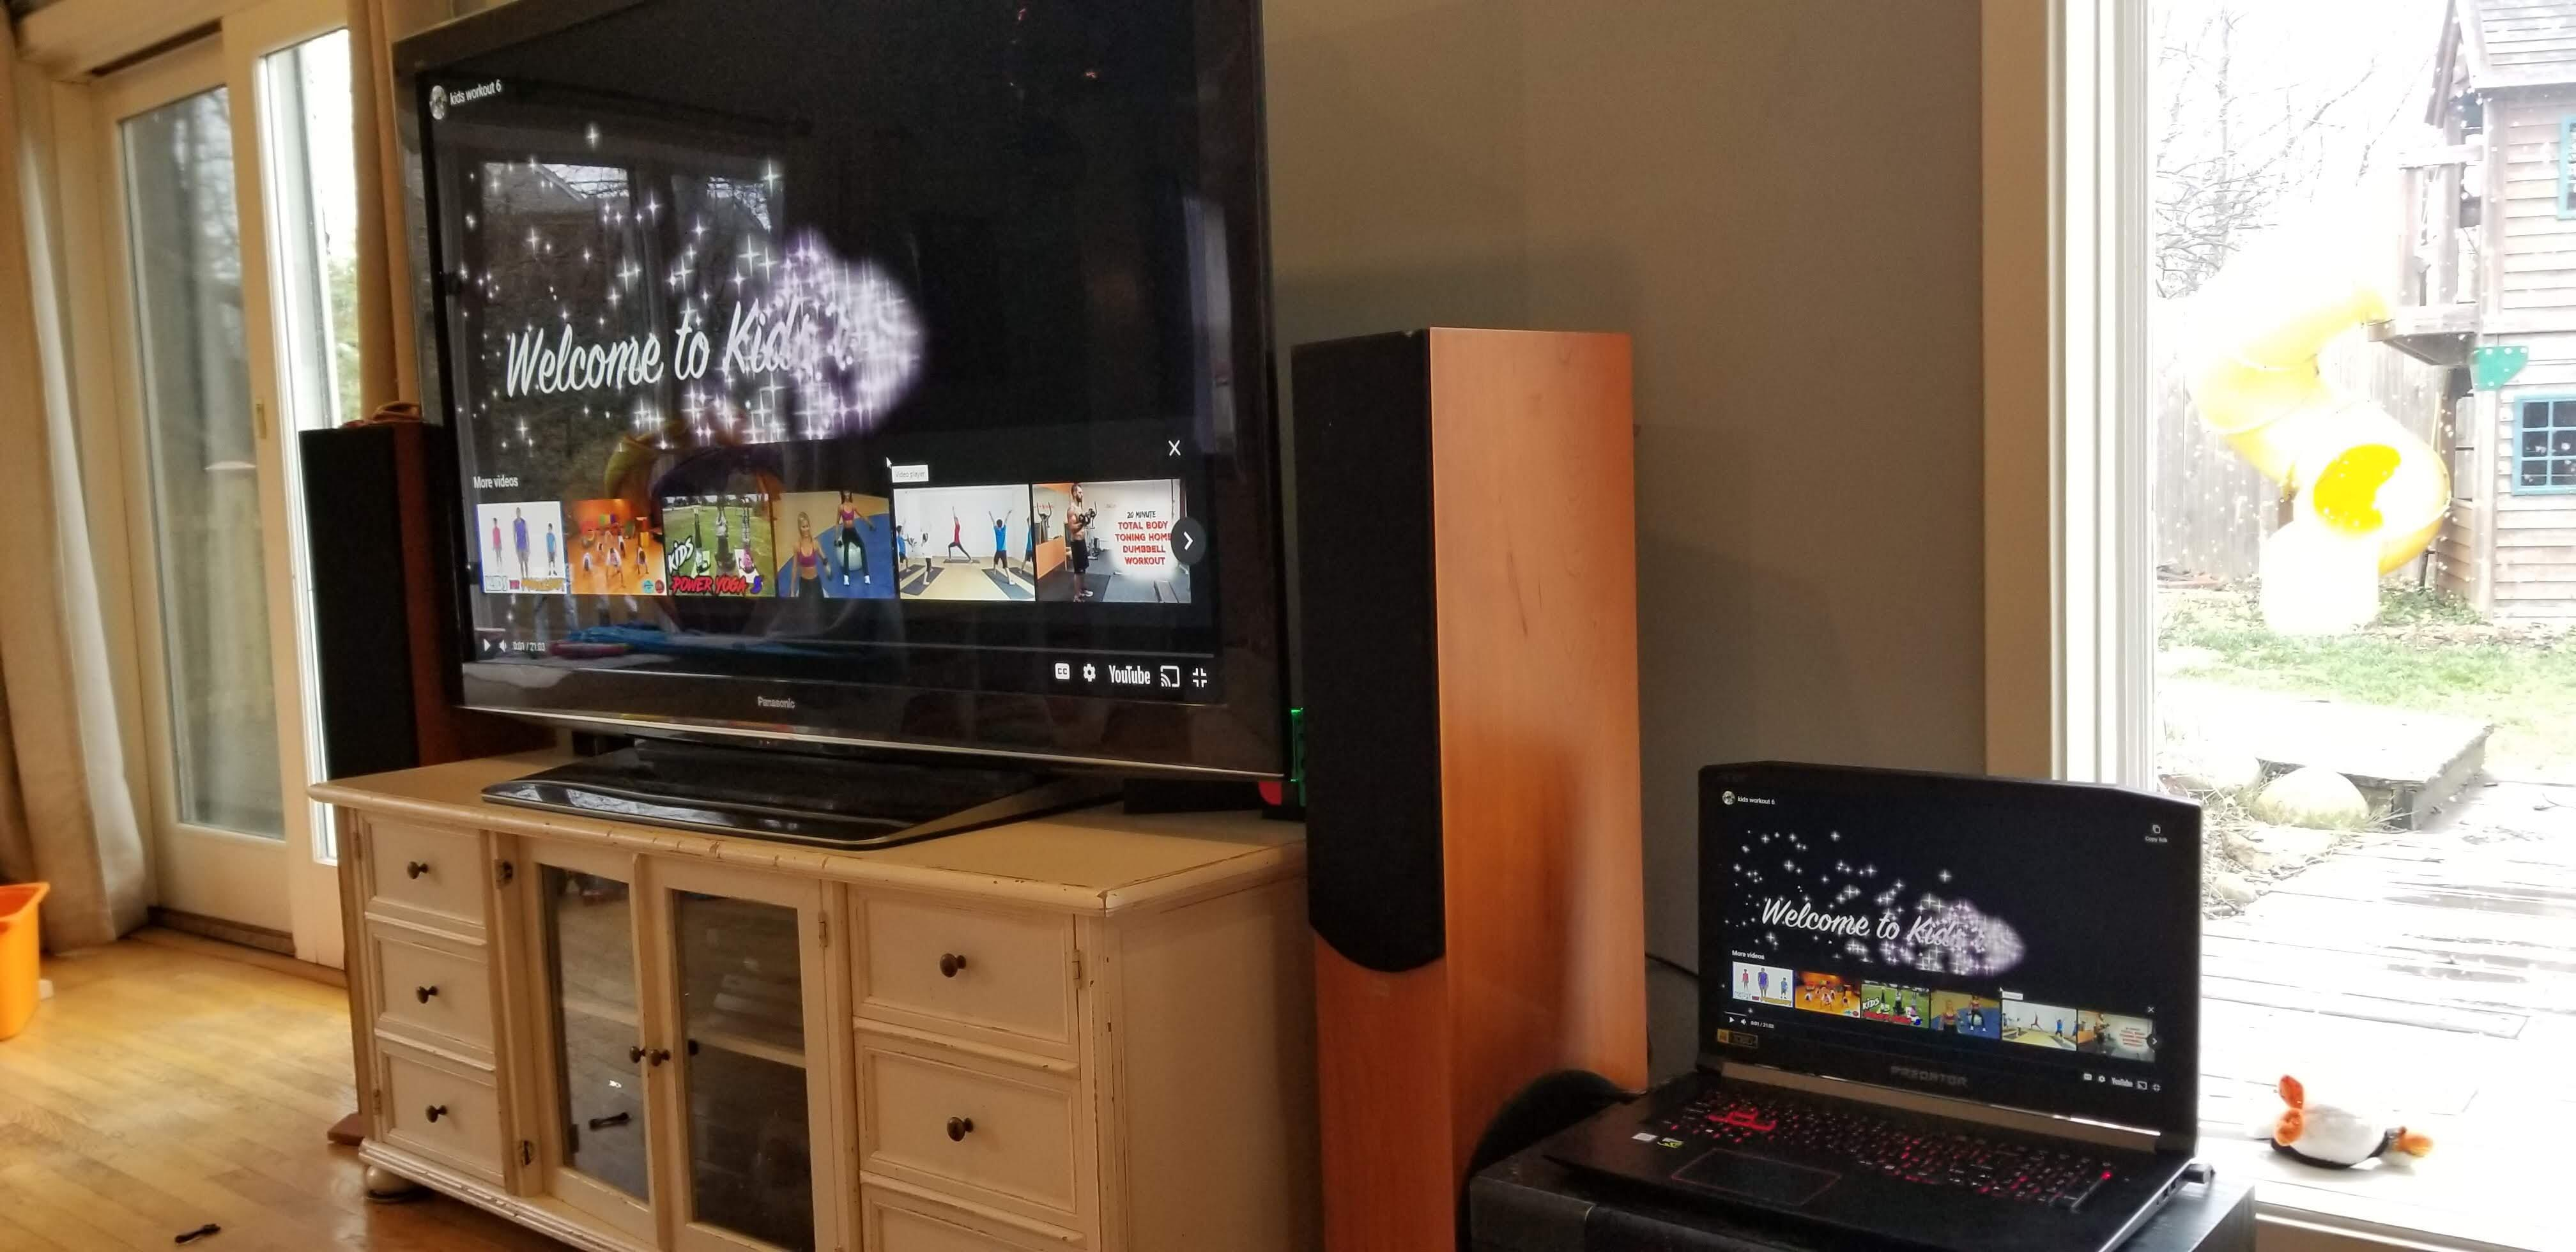 How To Connect Your Laptop Tv, How To Mirror Two Tvs Wirelessly